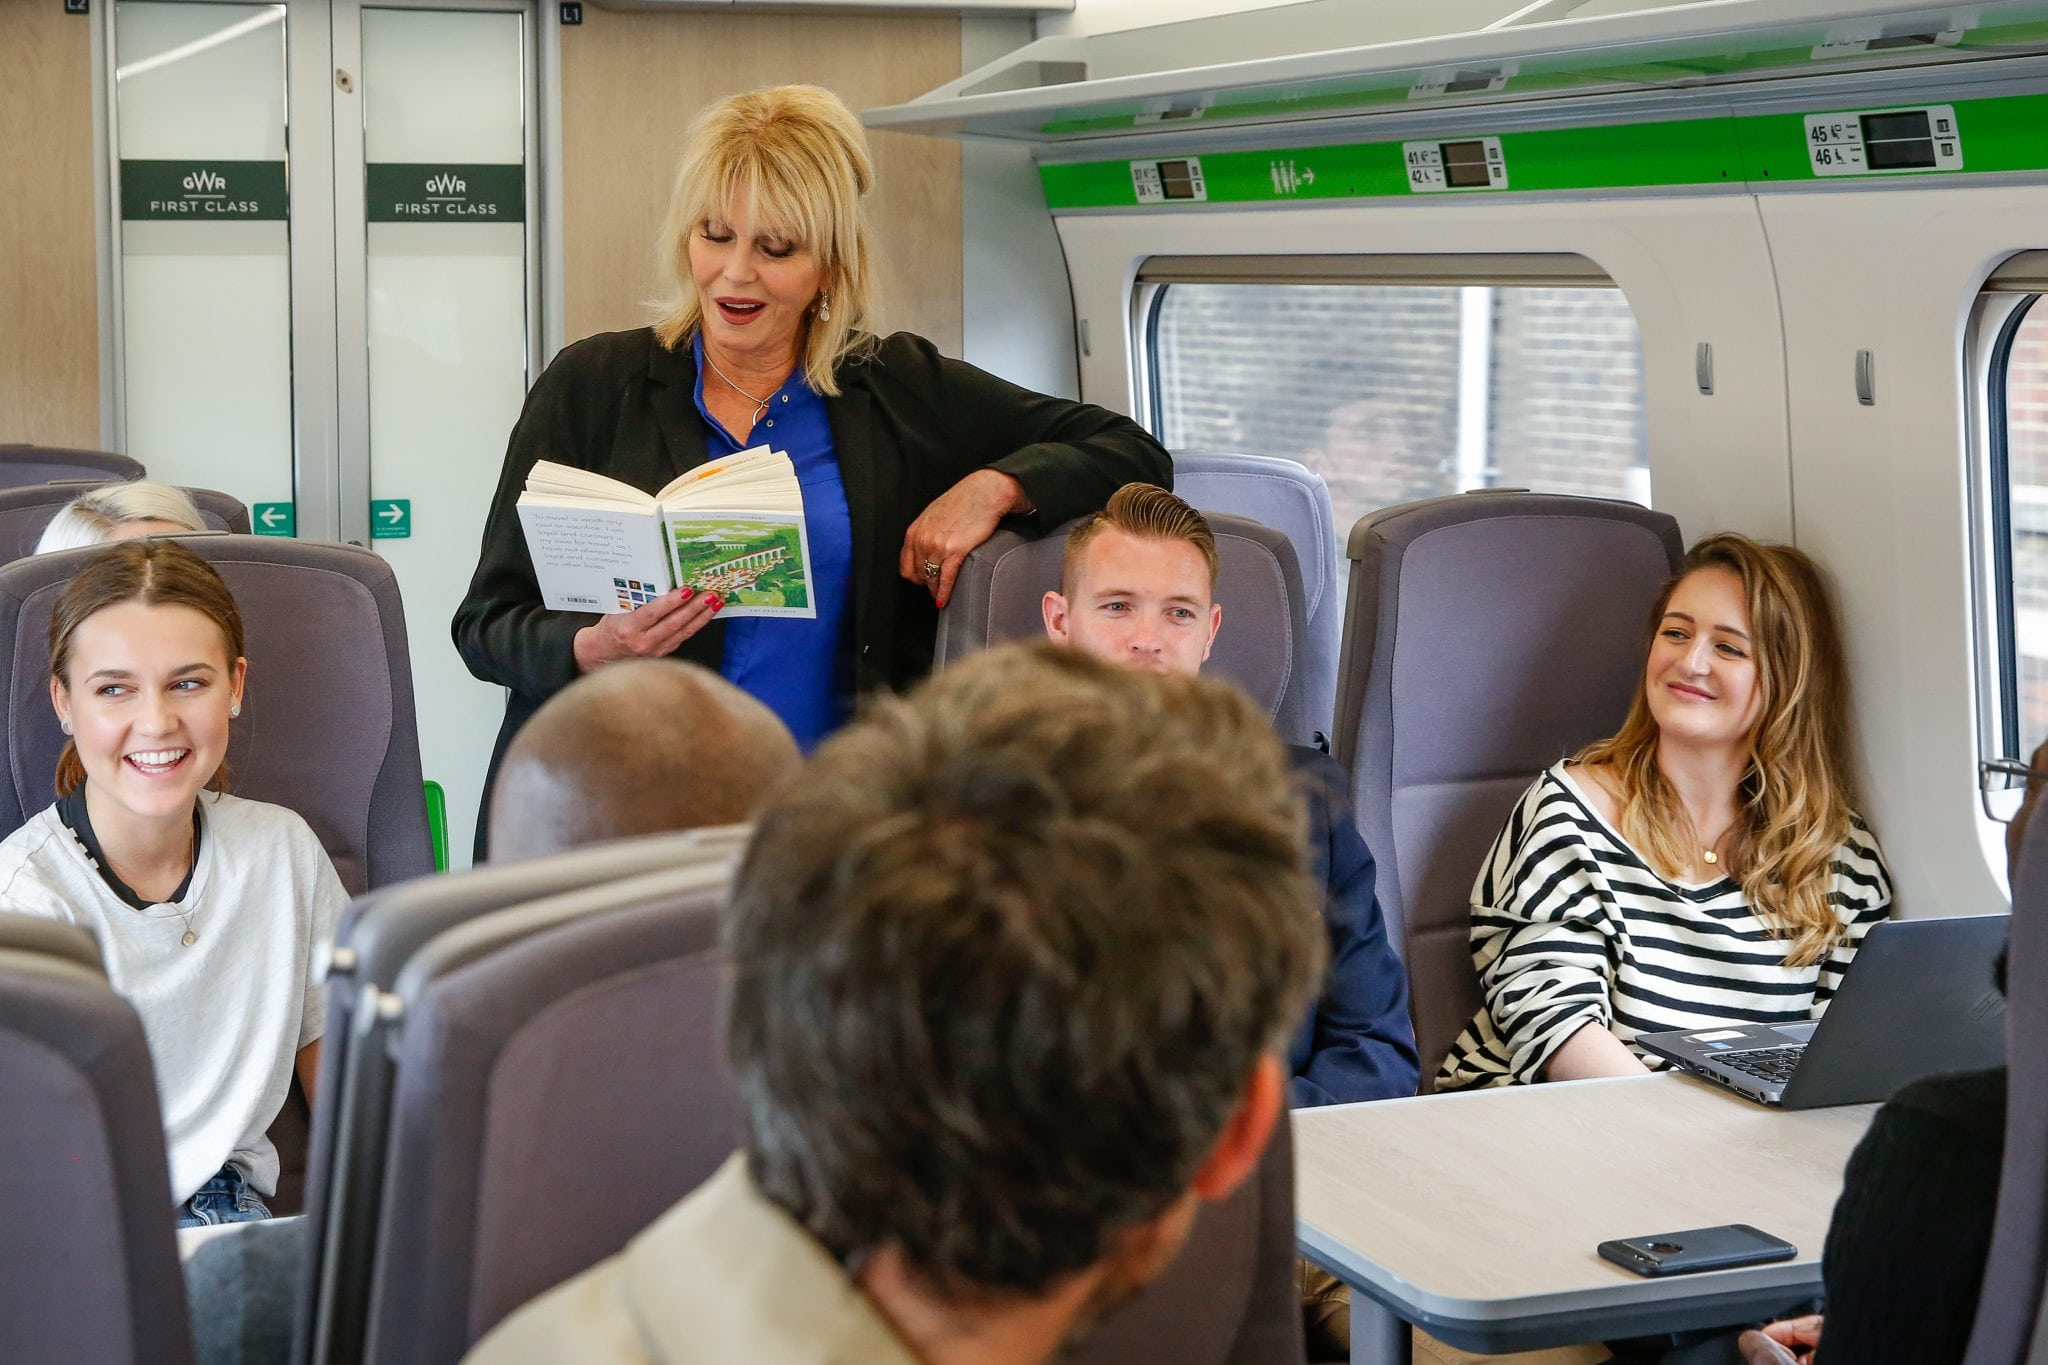 Joanna Lumley delights Swindon commuters with book reading